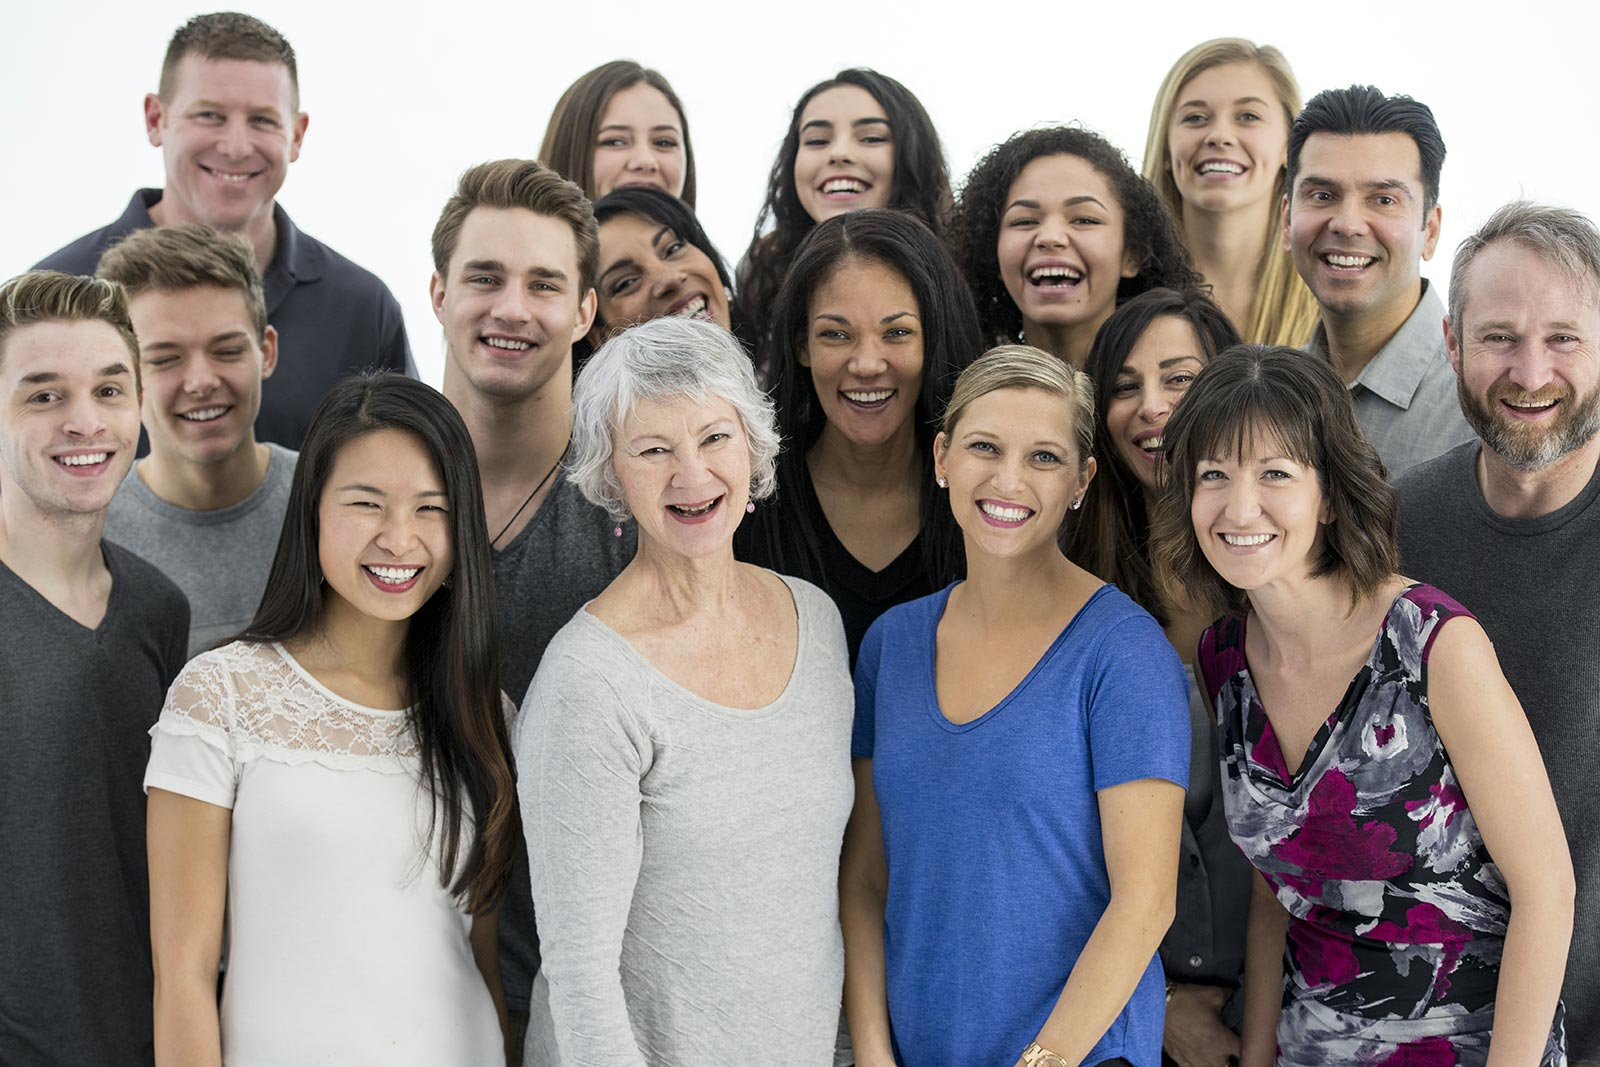 Large, diverse group of people who are partners